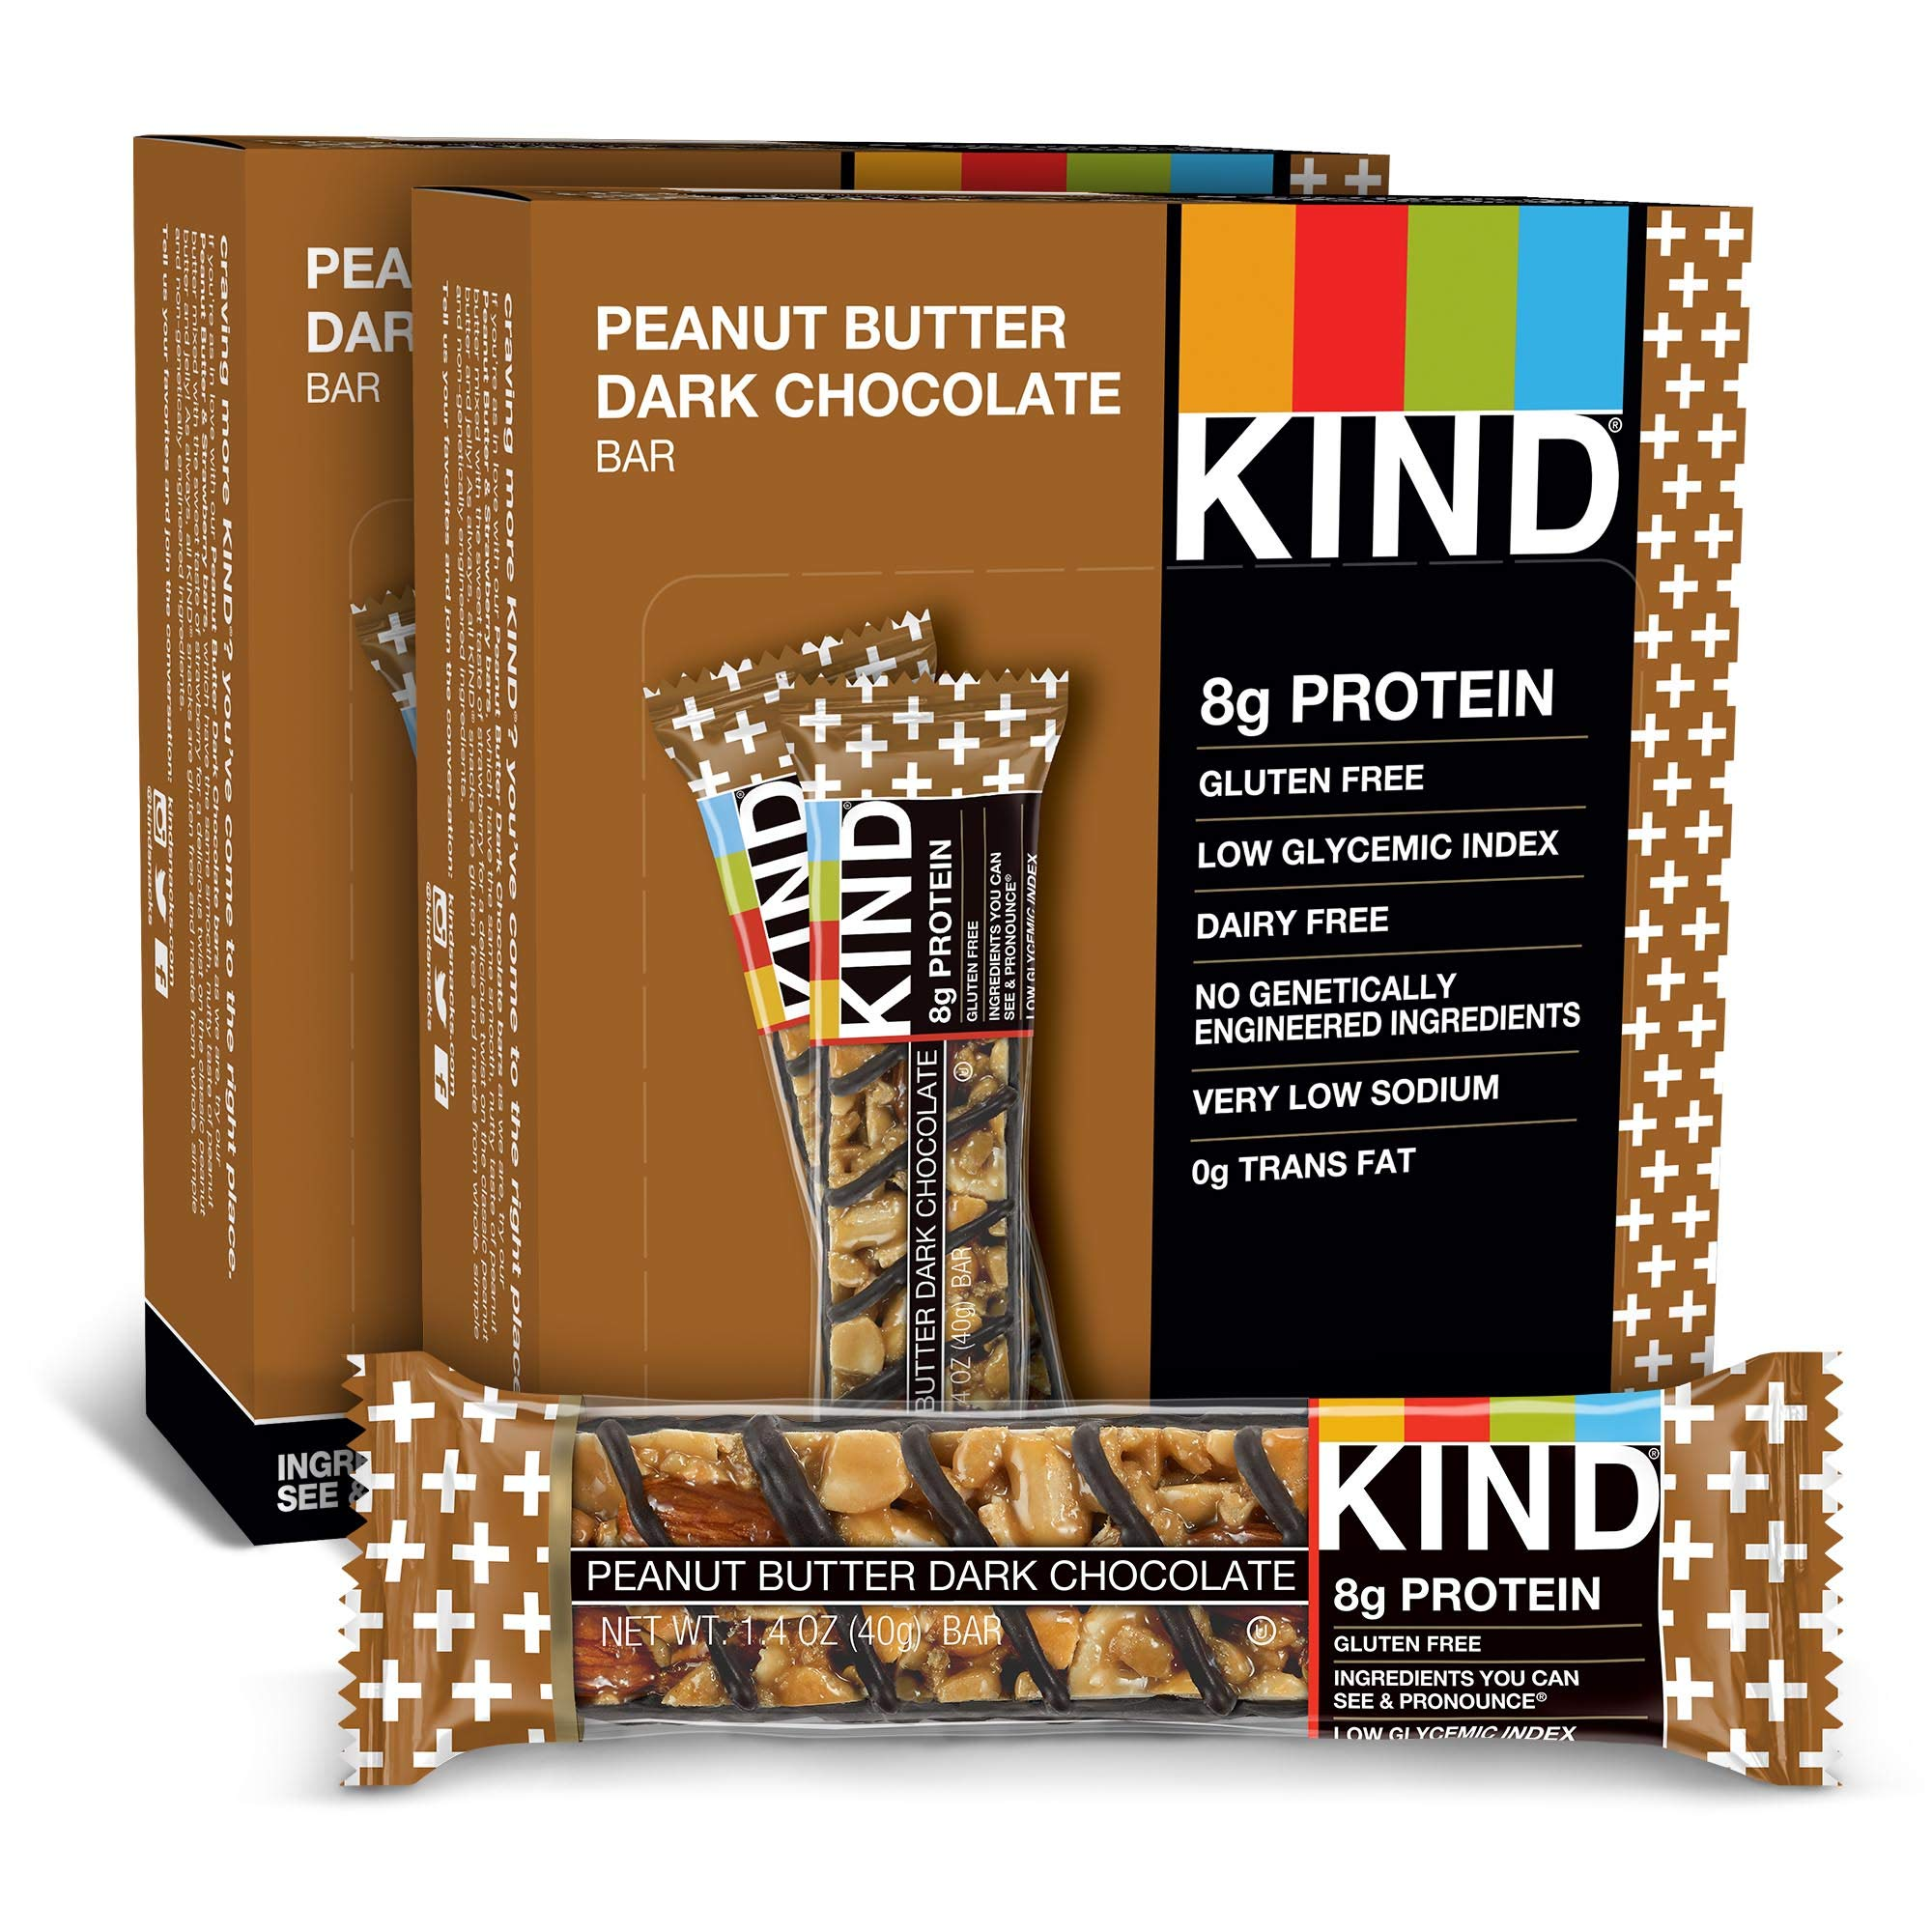 KIND Bars, Peanut Butter Dark Chocolate, 8g Protein, Gluten Free, 1.4 Ounce Bars, 24 Count